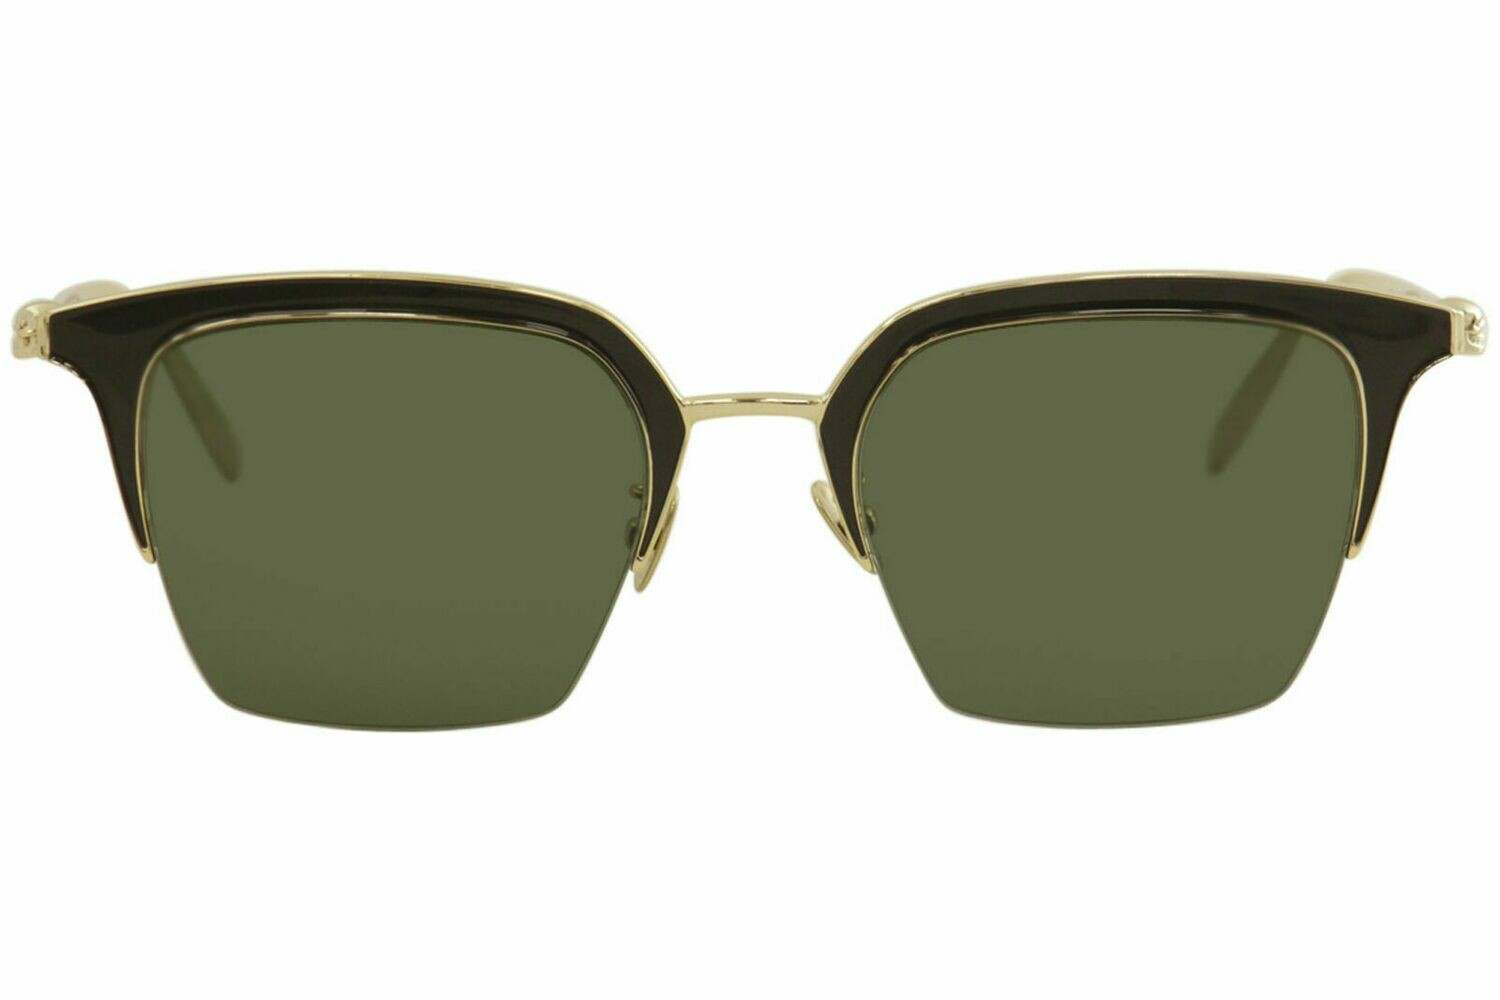 Alexander McQueen Uni-Sex Iconic Gold Sunglasses